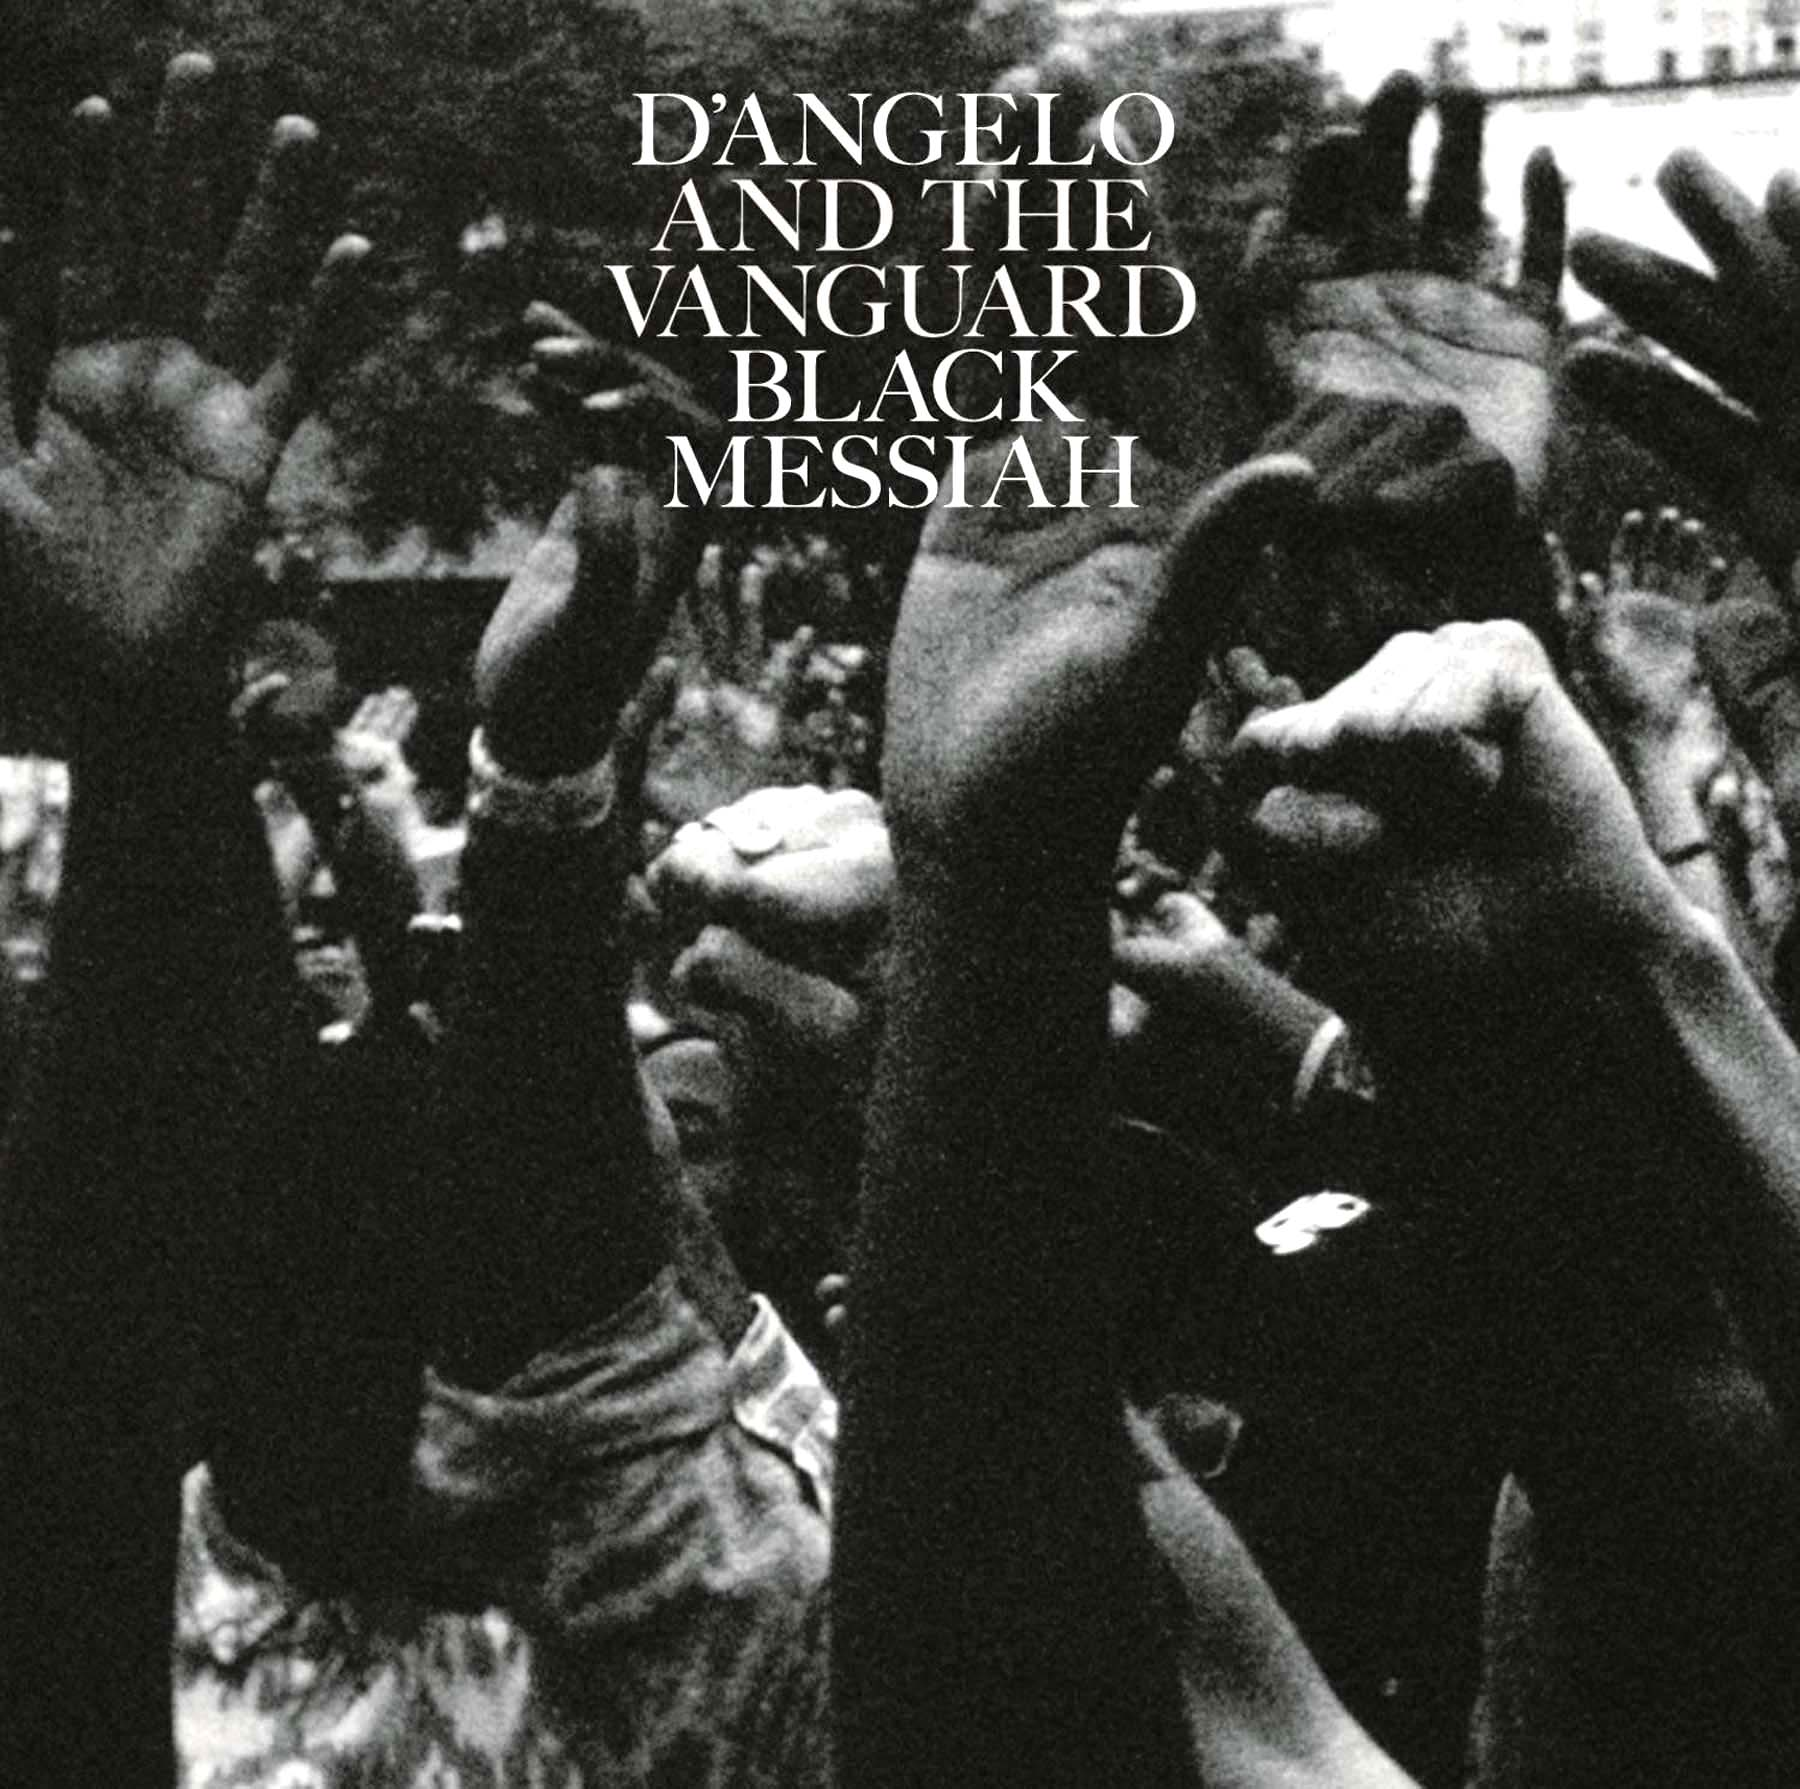 Black MessiahD'Angelo D'Angelo And The VanguardLabel: Sony Legacy